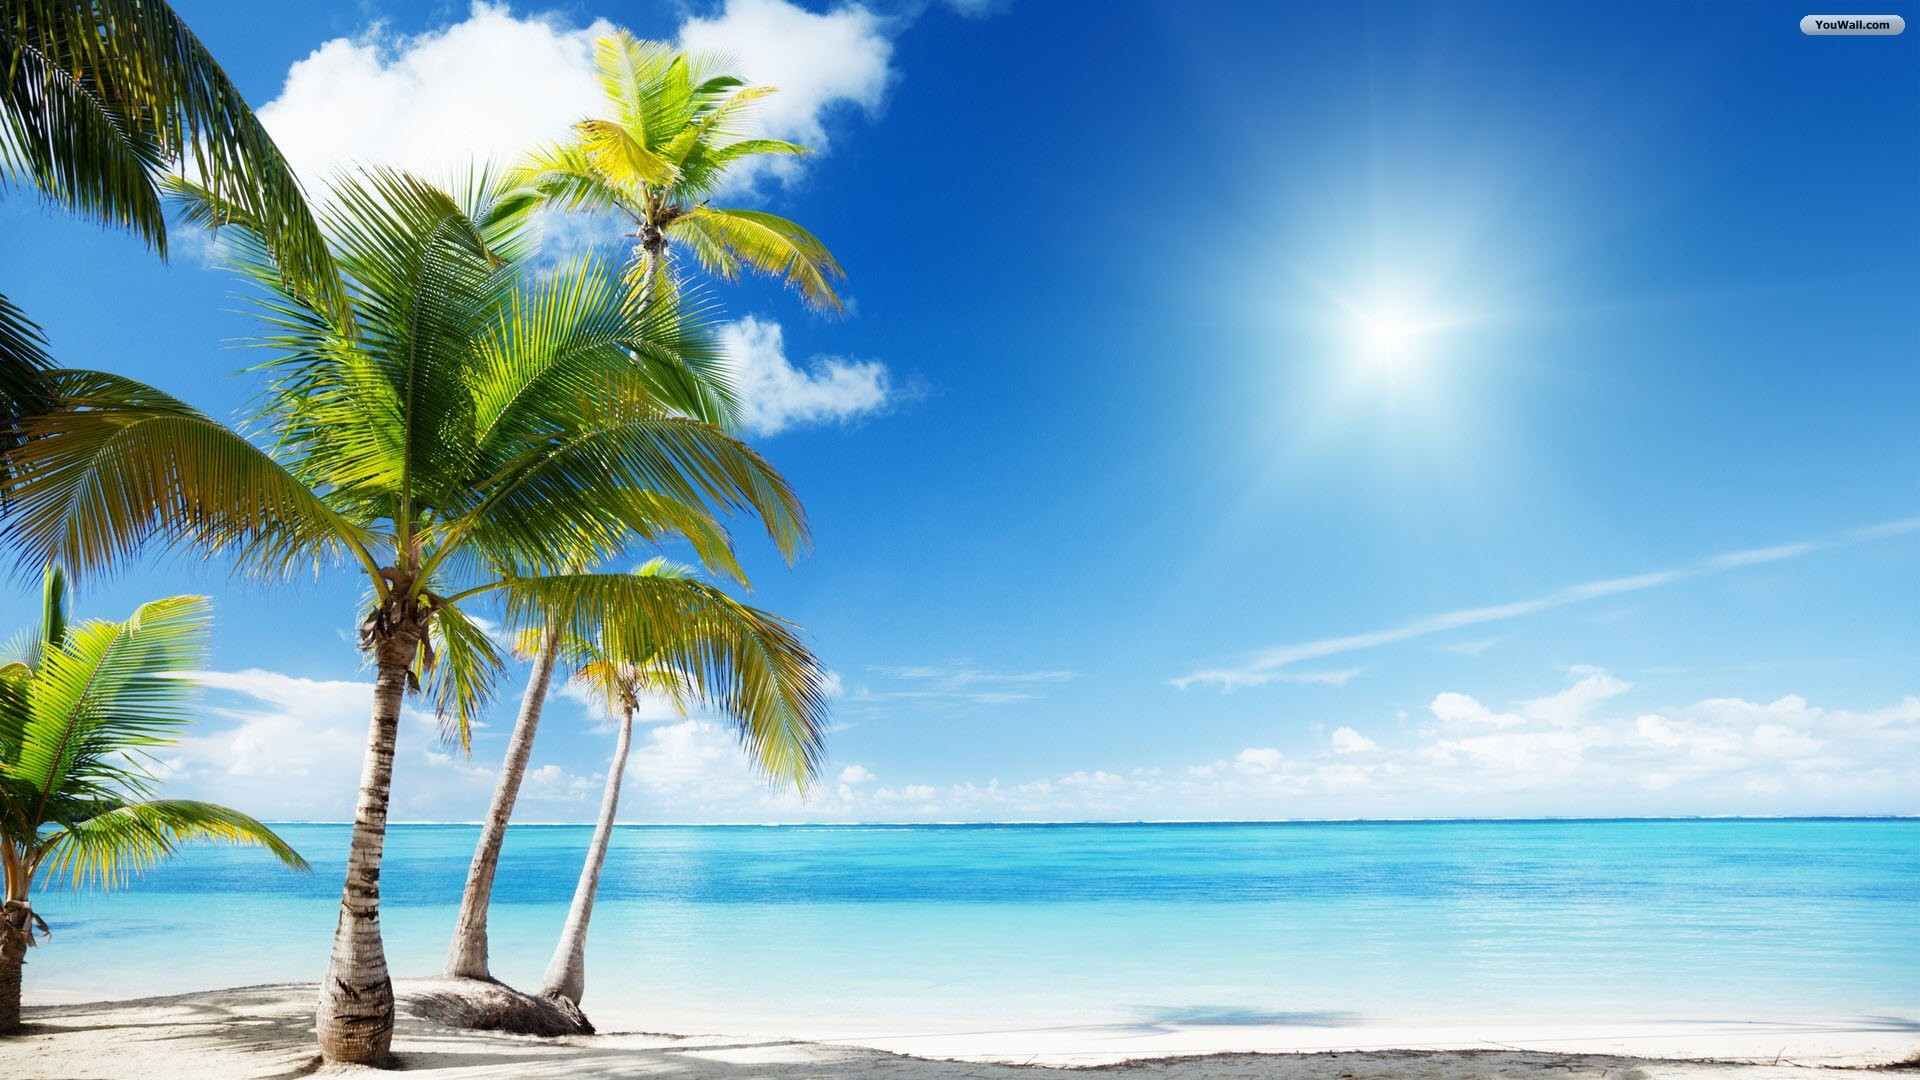 1920x1080 tropical oasis backgrounds - Google Search · Summer WallpaperBeach ...